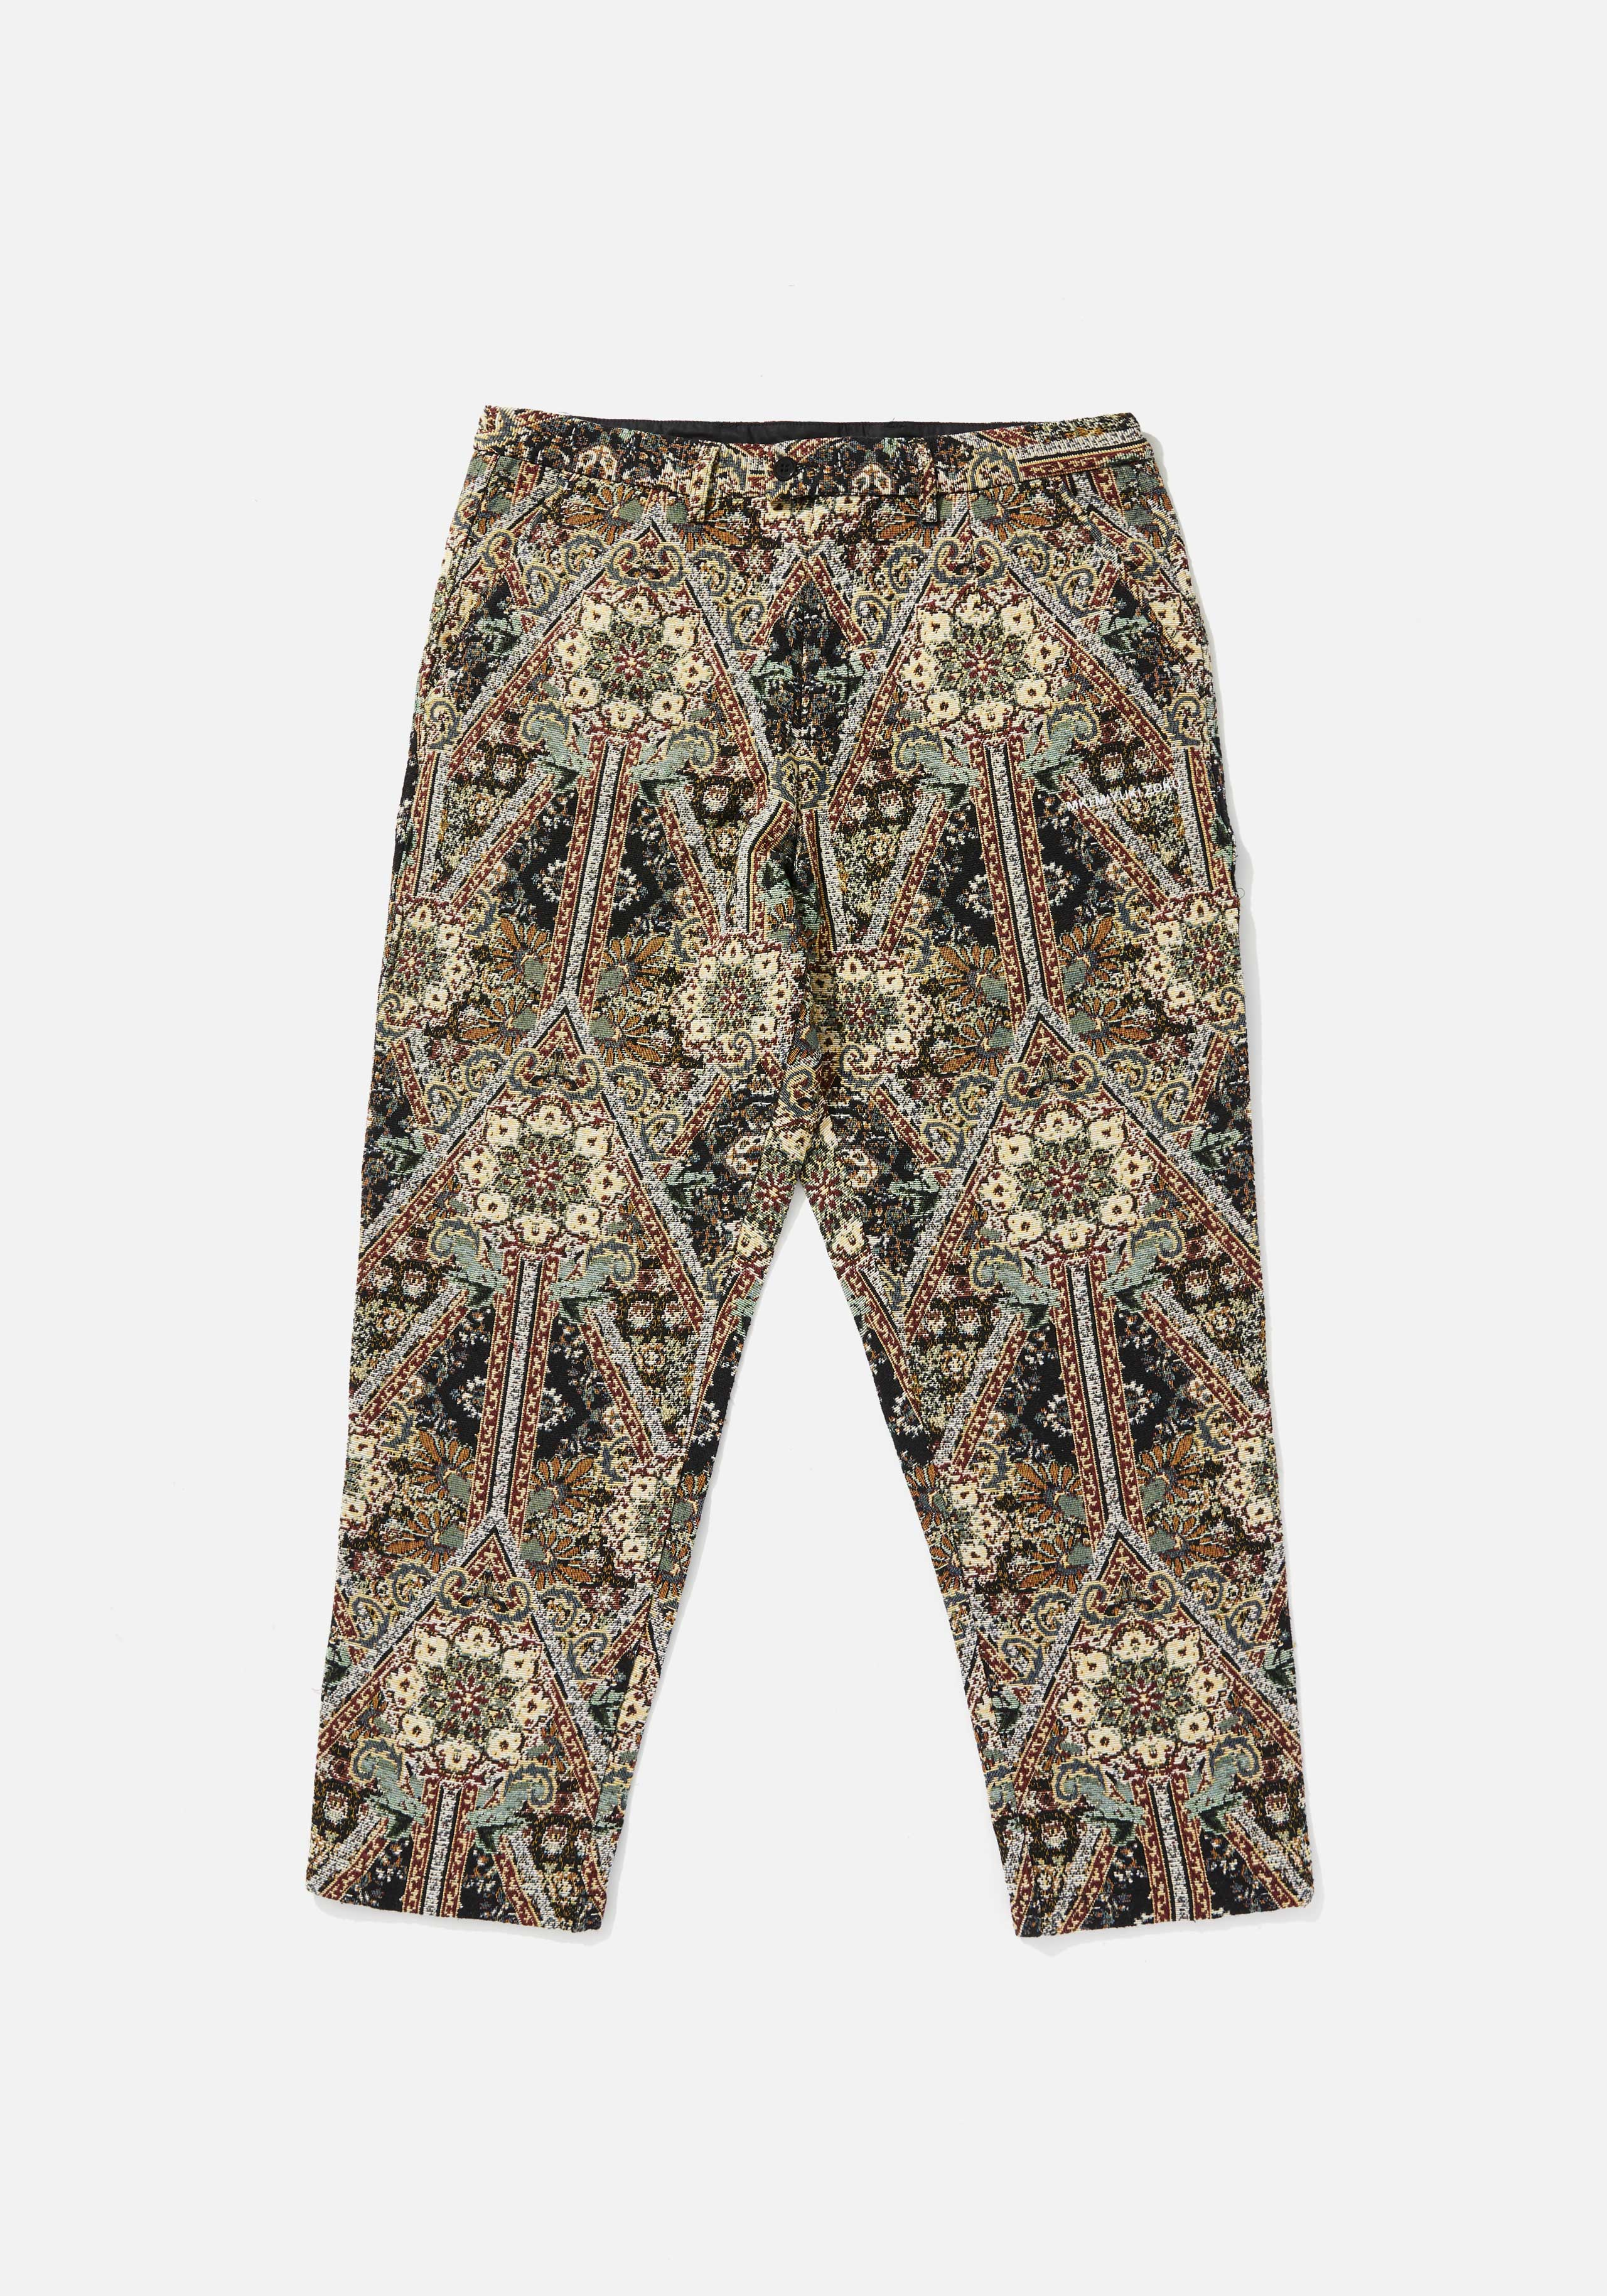 mki tapestry trousers 1